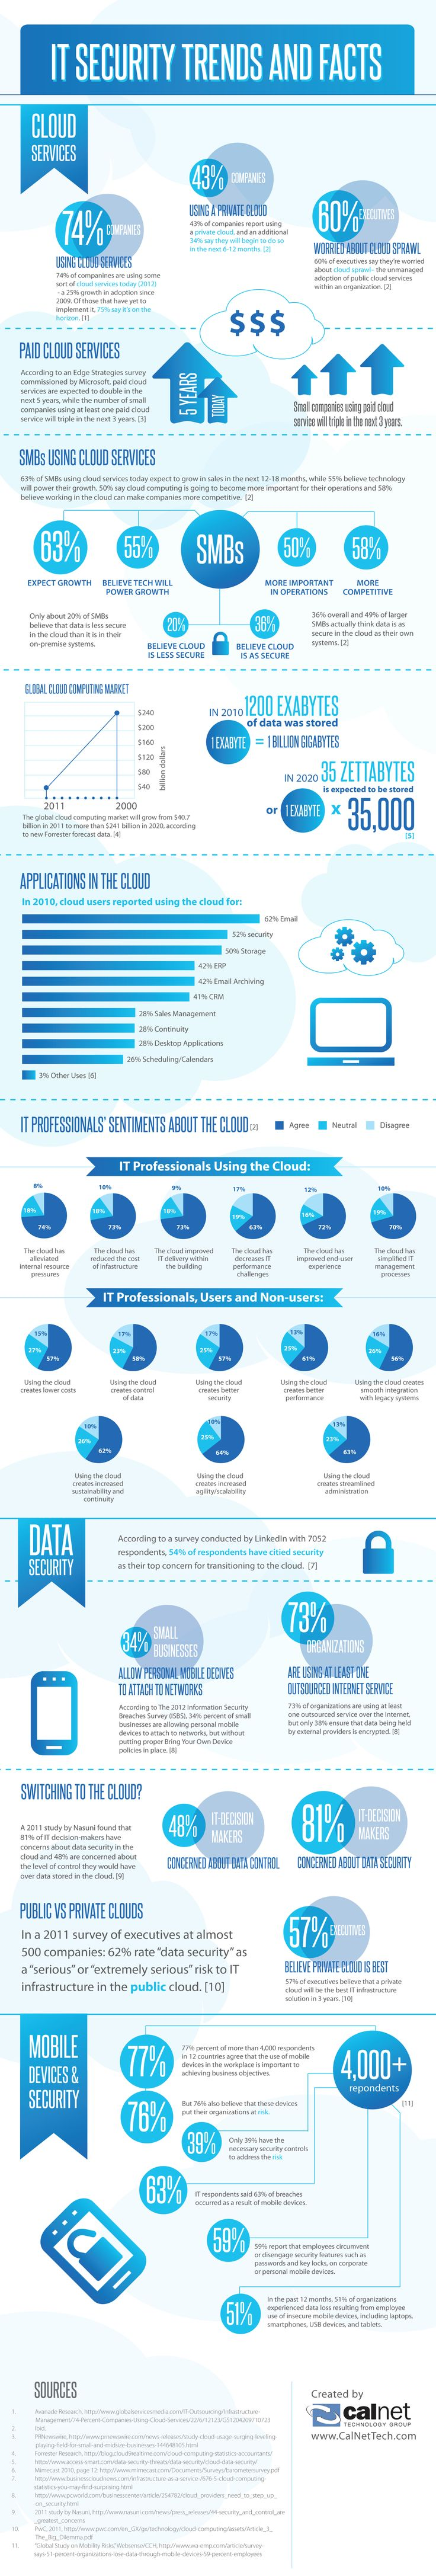 IT Security in the #Cloud, #BigData, and mobile devices Trends and Facts [INFOGRAPHIC]